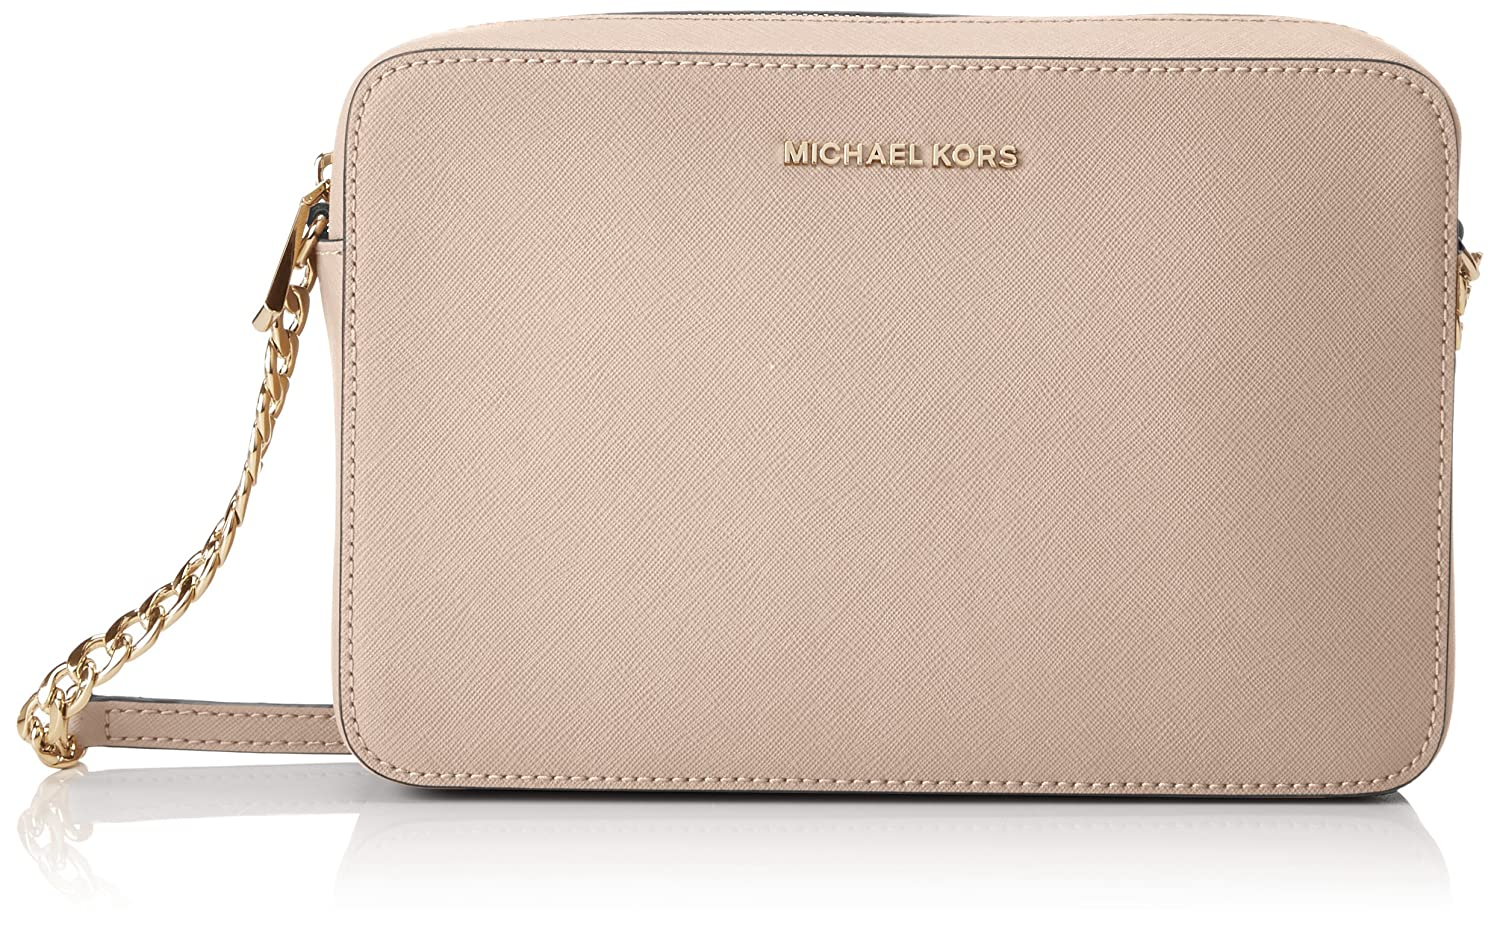 c6abe992636a Michael Kors Womens Jetset Lg Ew Crossbody Cross-Body Bag Pink (Soft Pink):  Amazon.co.uk: Shoes & Bags